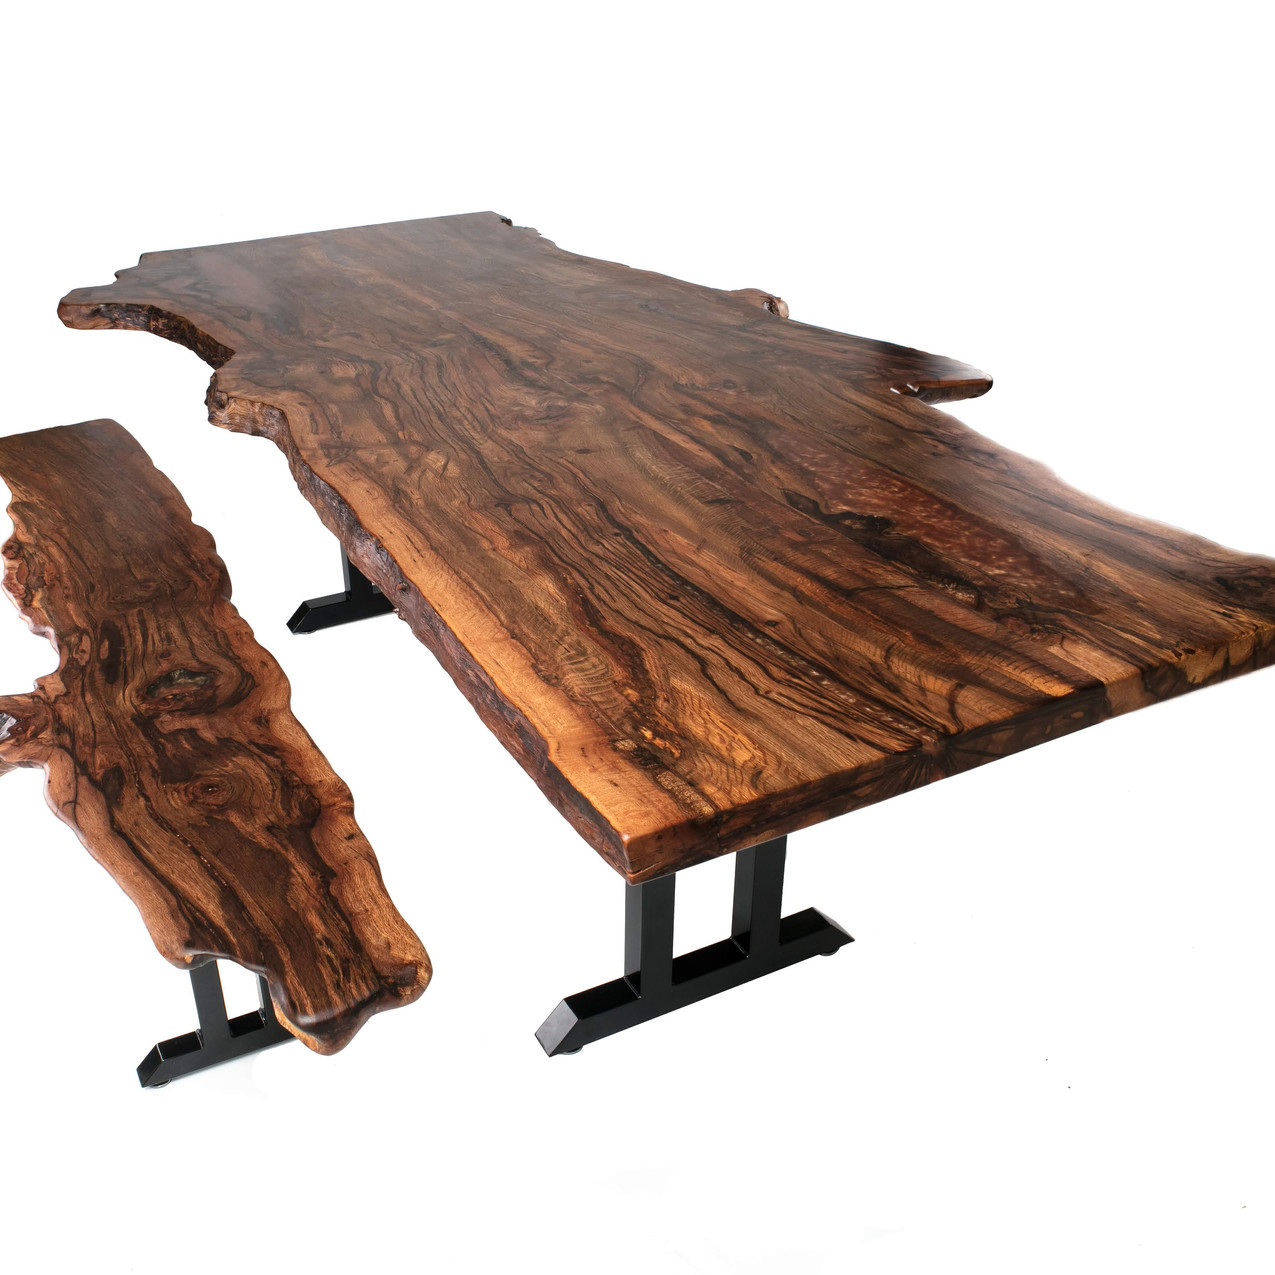 Black Cherry Live Edge Dining Table and bench combo made from rare figured AZ reclaimed black cherry from Cottonwood/Jerome.